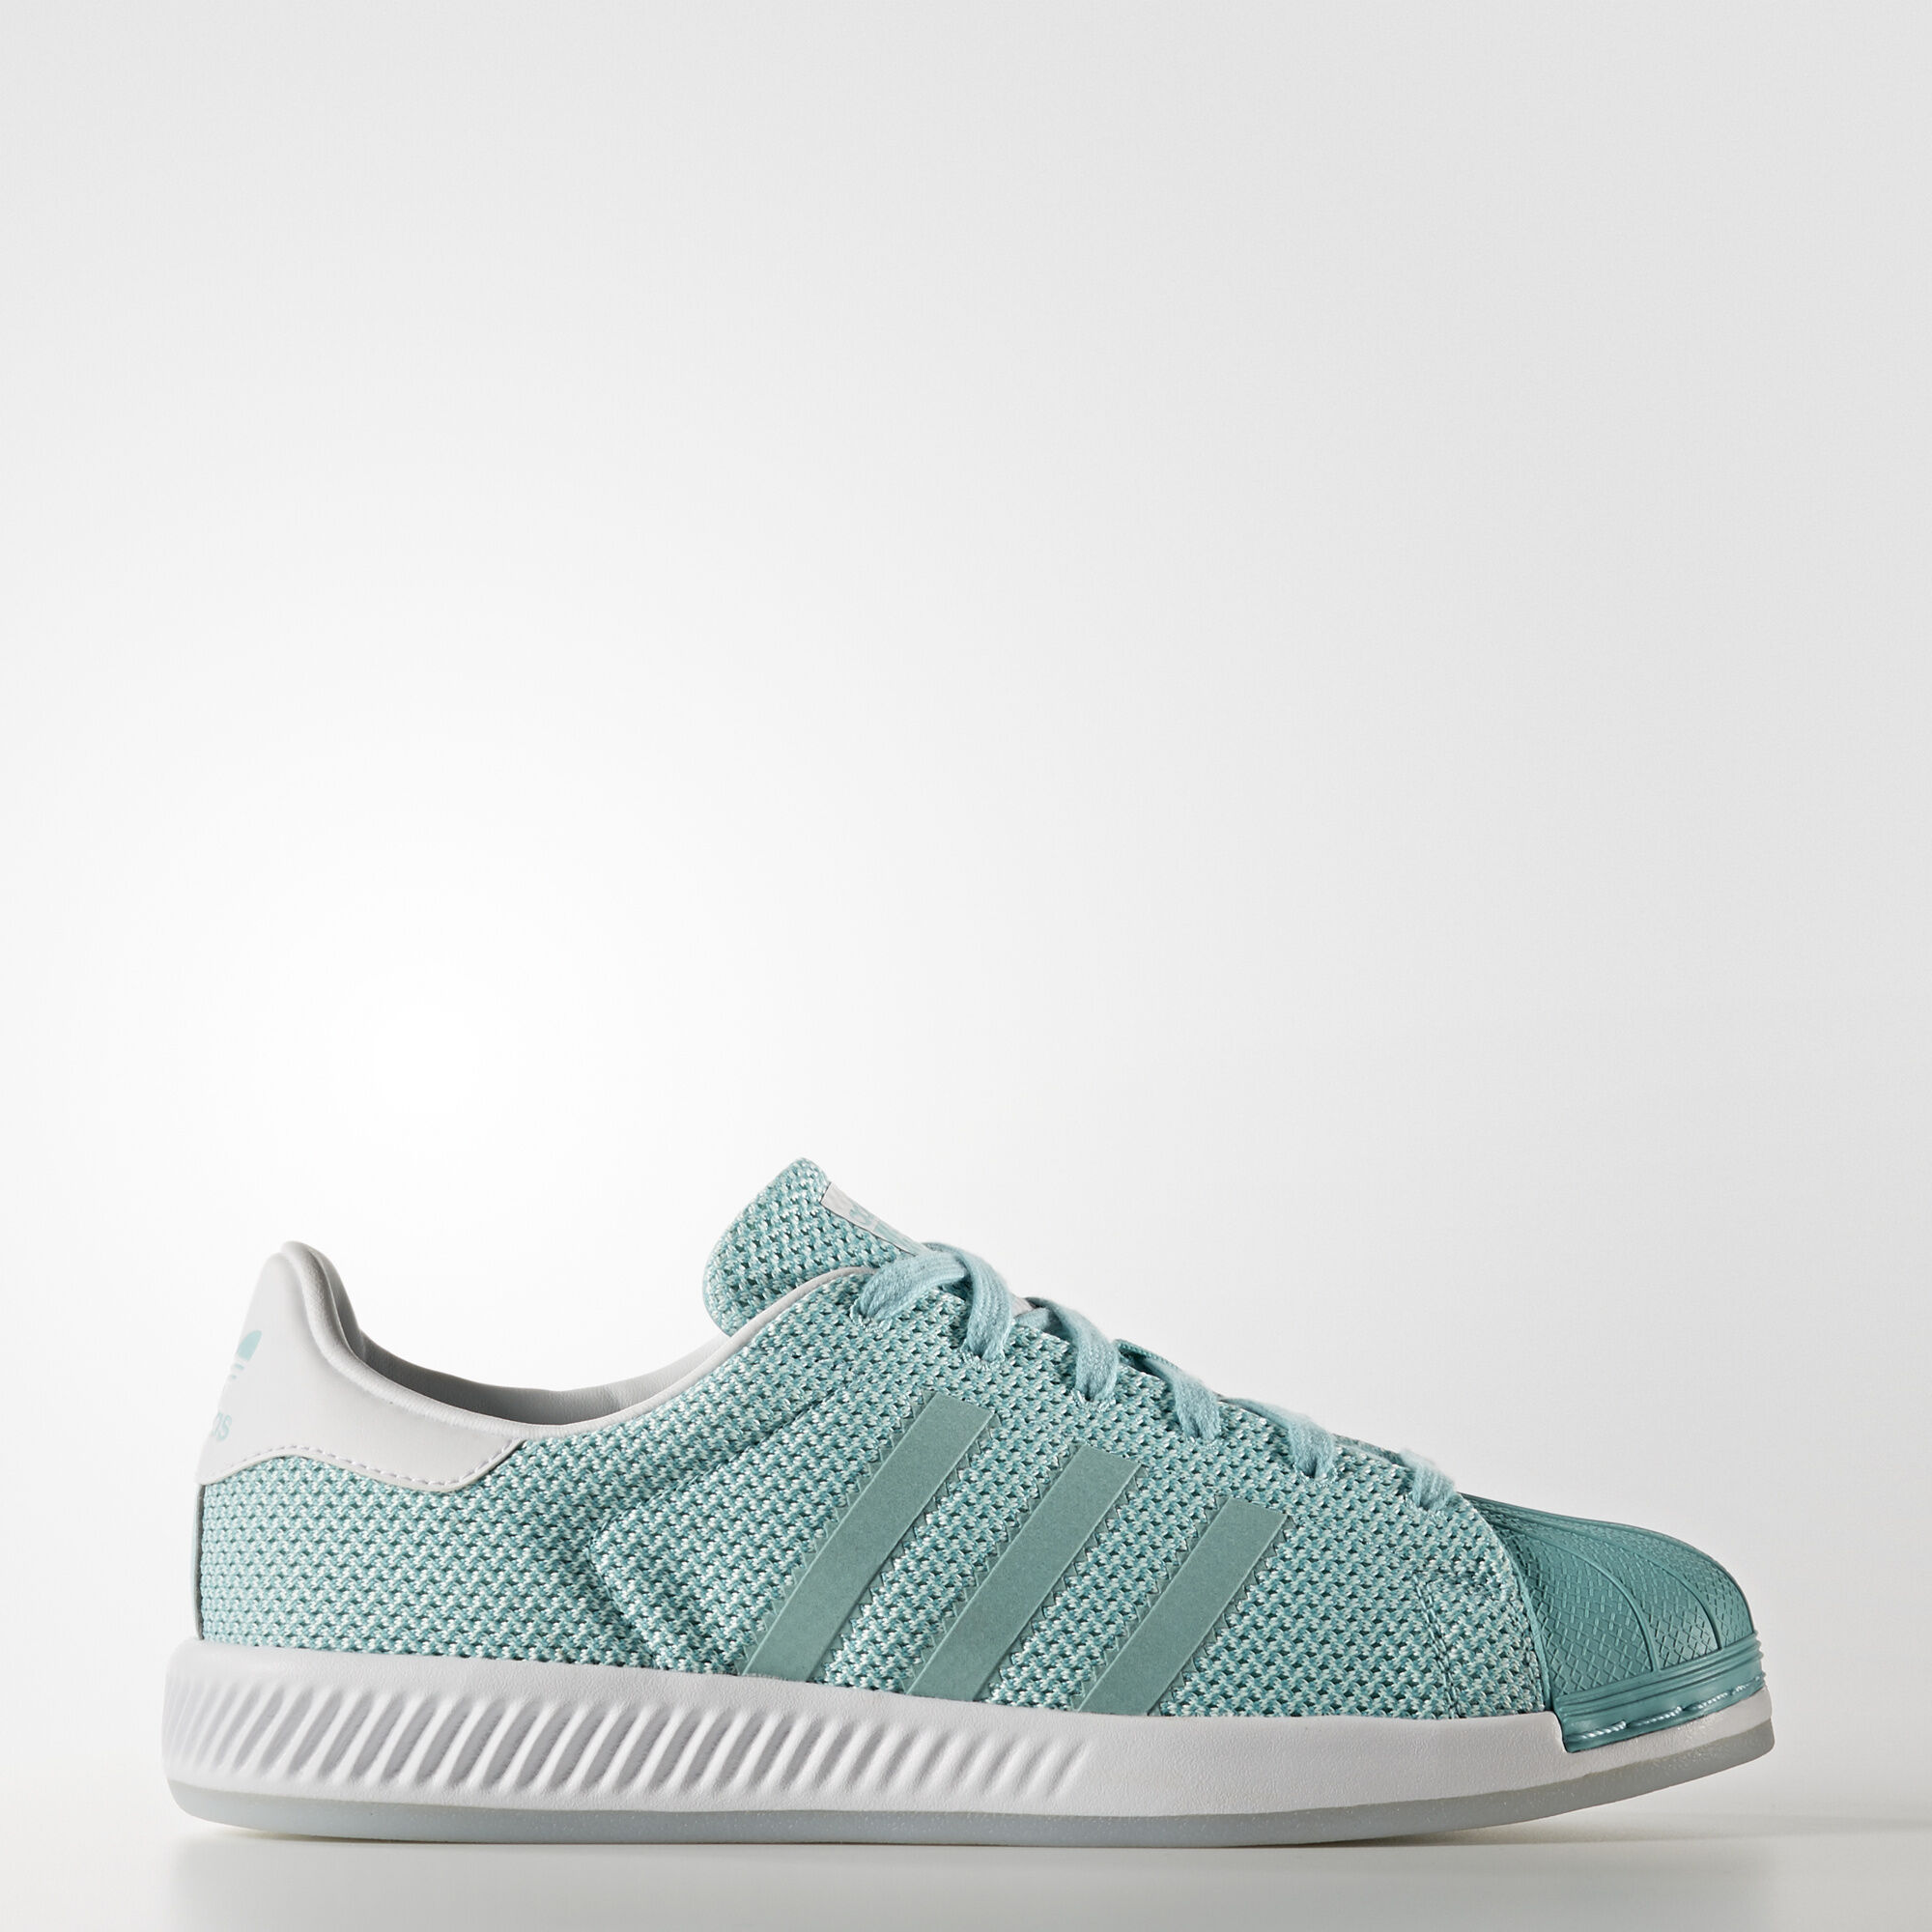 Superstar Adidas Shoes Pink